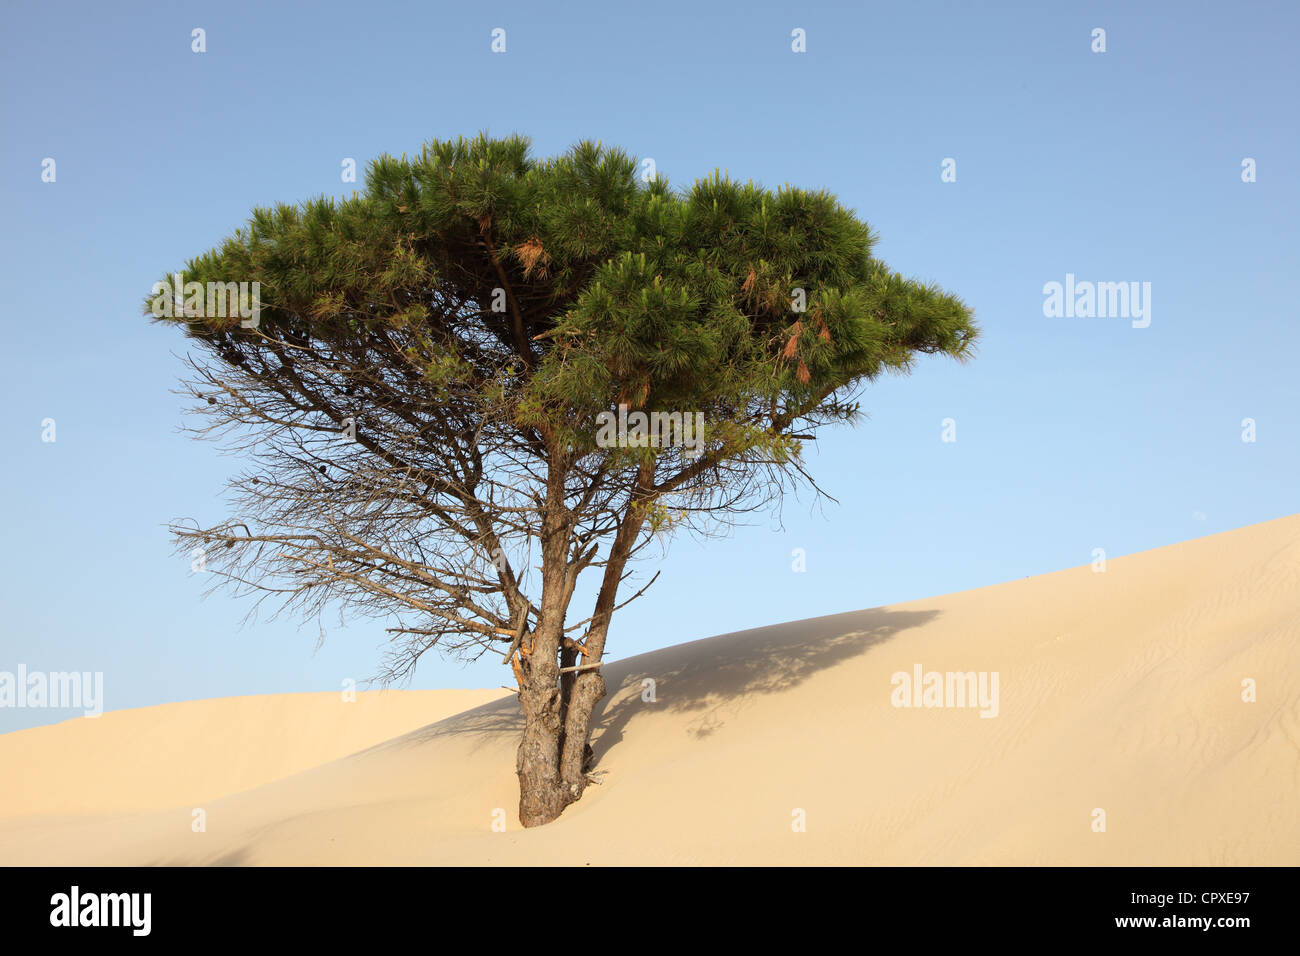 Pine Tree at a sand dune in Punta Paloma, Andalusia Spain - Stock Image